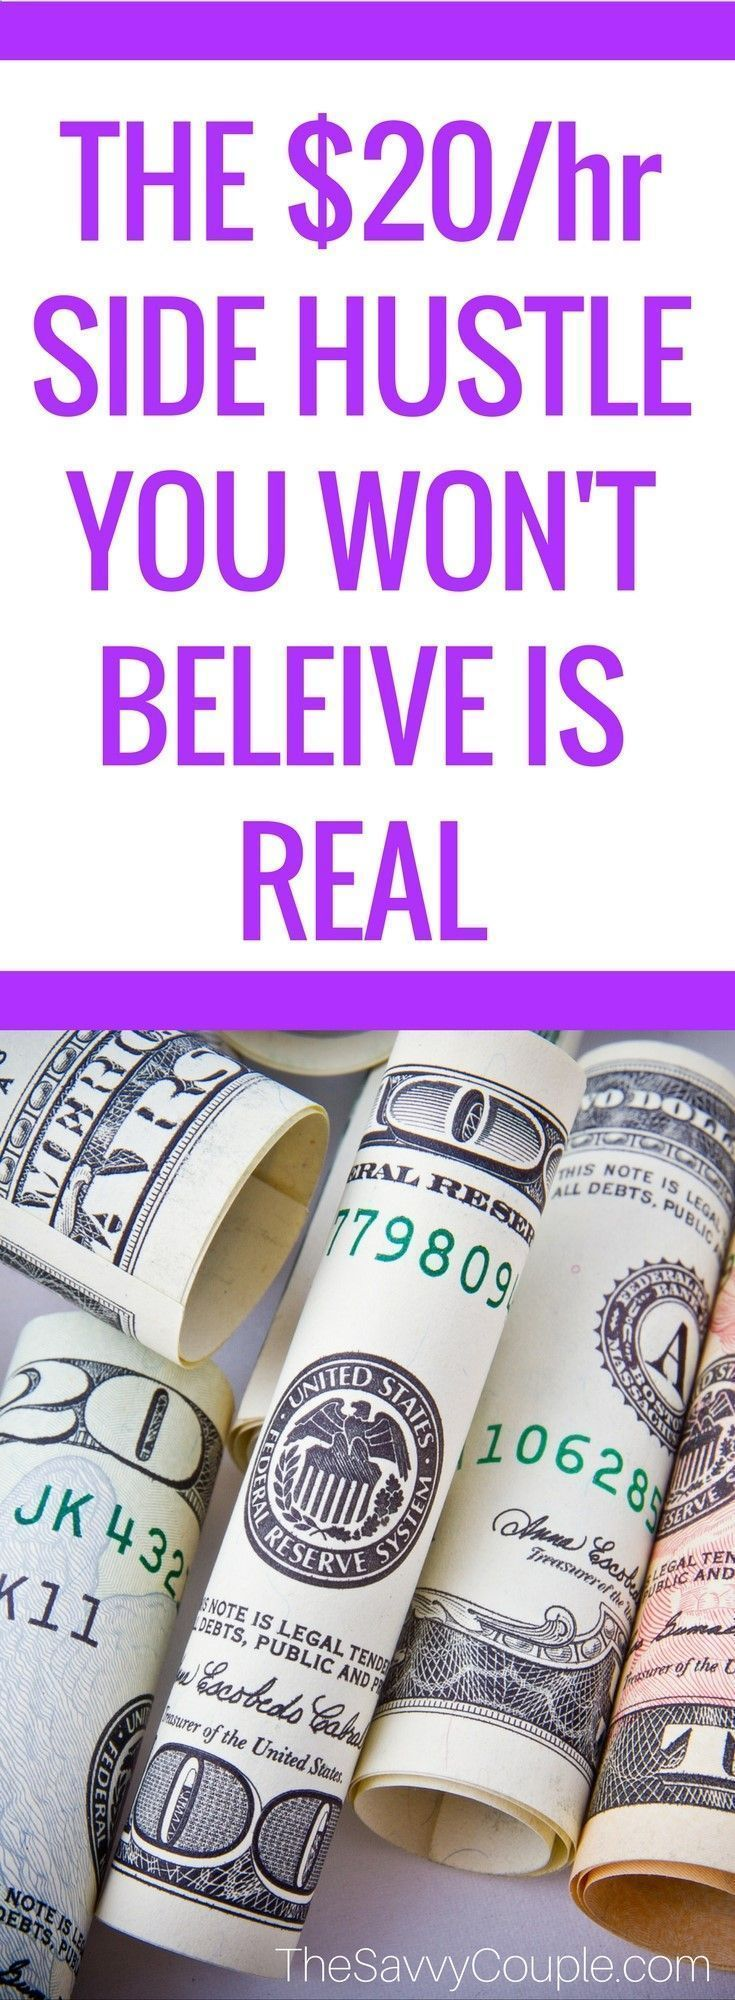 Best 313 Good Ideas On Pinterest Cooking Recipes Cool Buy 3 Get 1 Free Galten Earn Money Online Fast We Have Finally Found The Ultimate Work From Home Side Hustle Vipkid Will Absolutely Change Your Life Forever